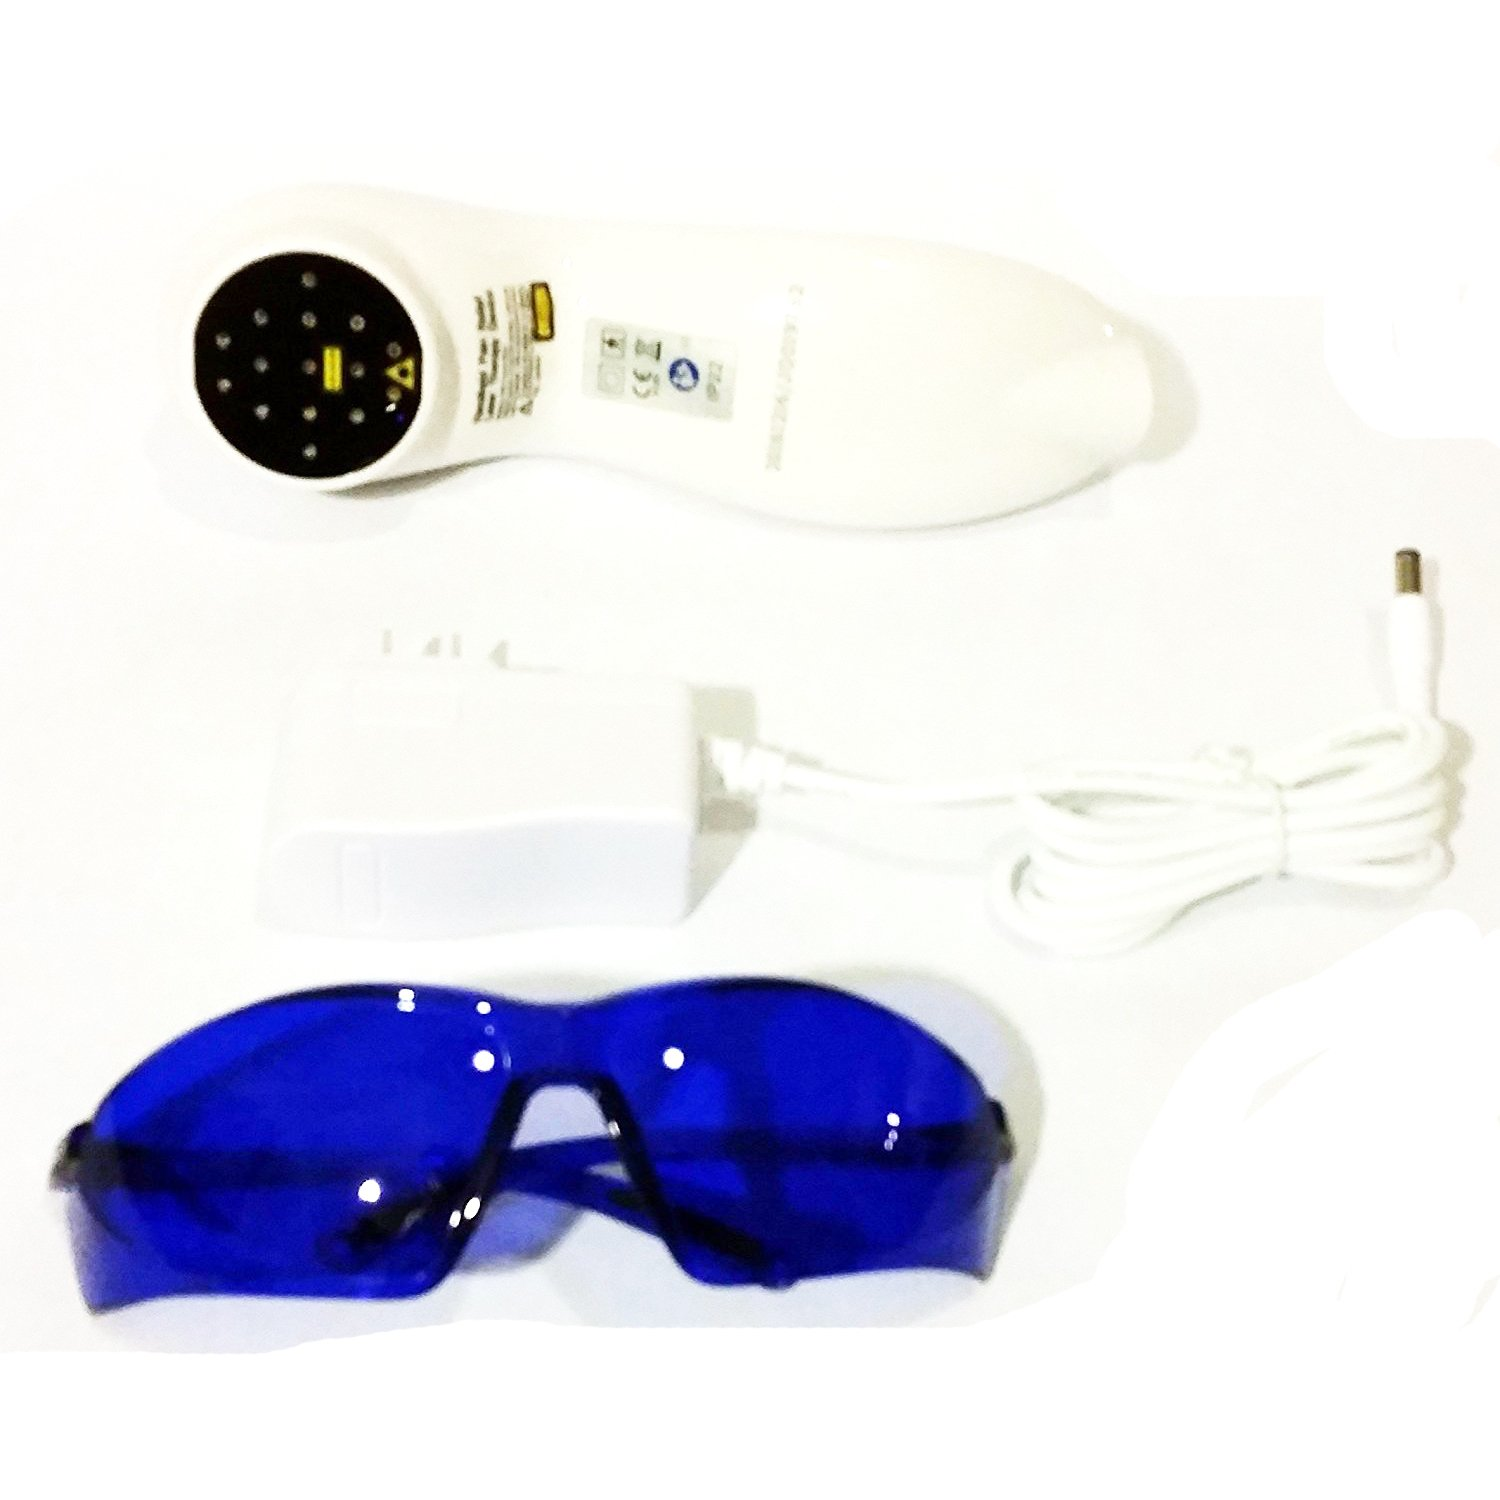 Pain Relief Cold Laser Therapy Unit + 2 FREE Gifts + FREE FedEx Shipping by YJTSKY (Image #4)